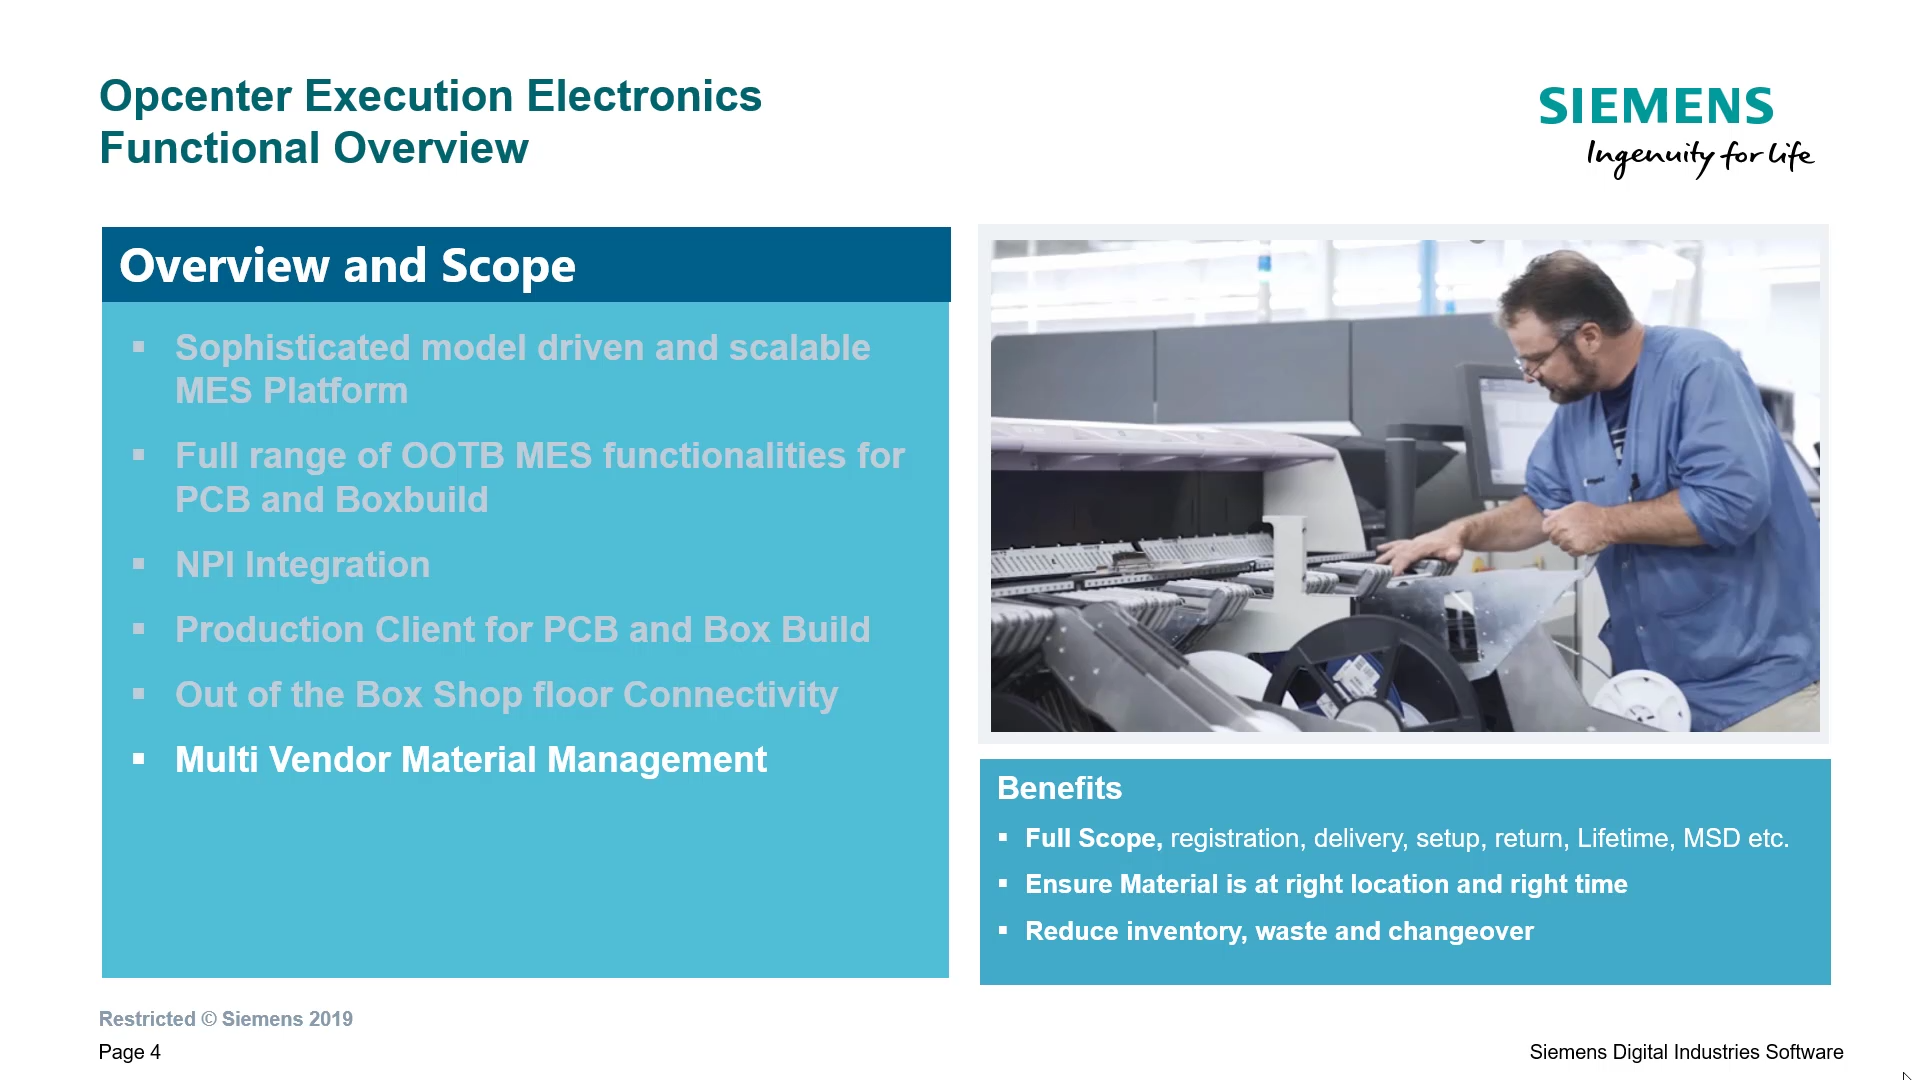 Introduction to Opcenter EX Electronics cover image